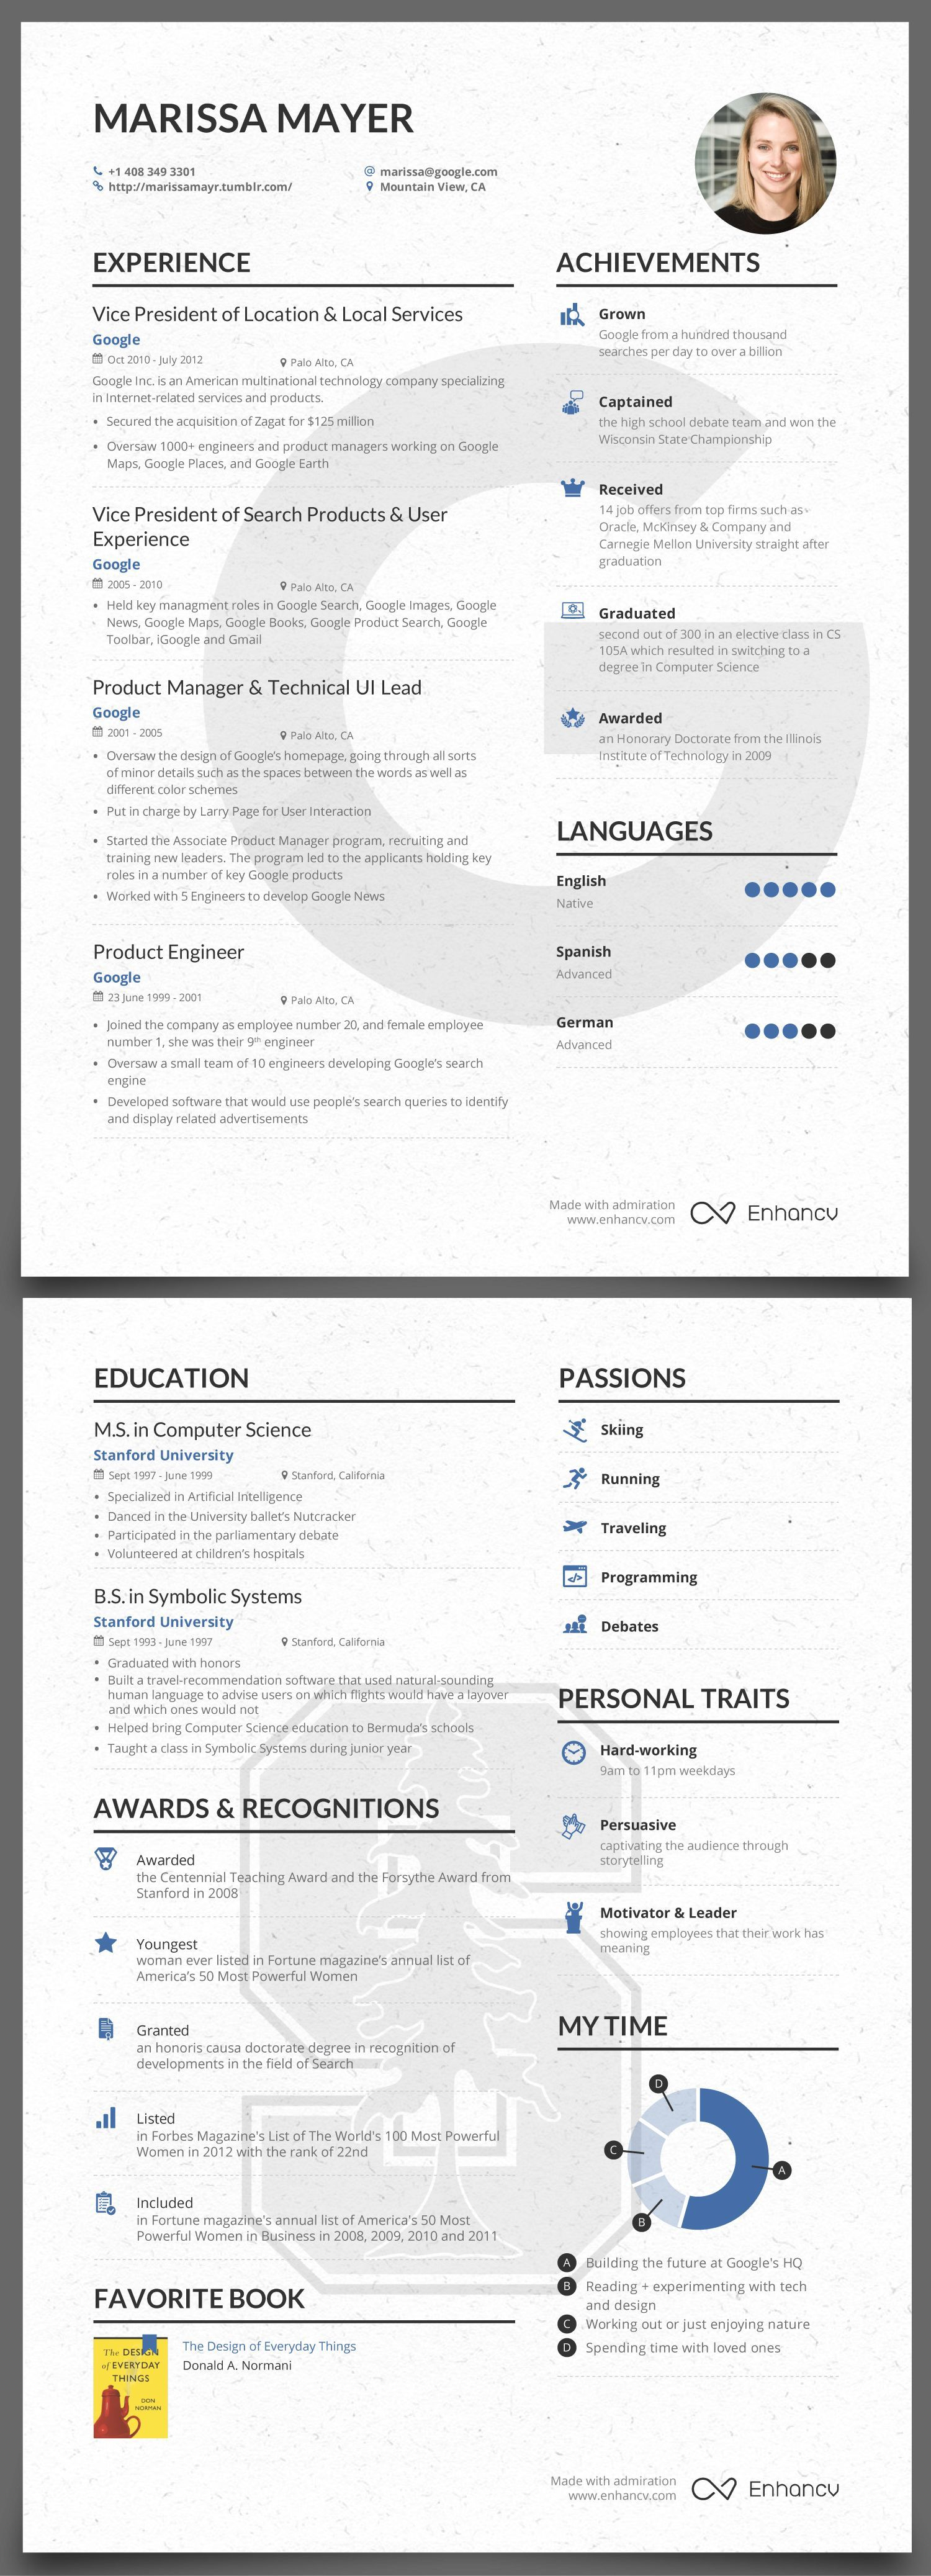 The Success Journey Marissa Mayer S Pre Yahoo Resume Resume Writing Examples Teaching Resume Examples Infographic Resume